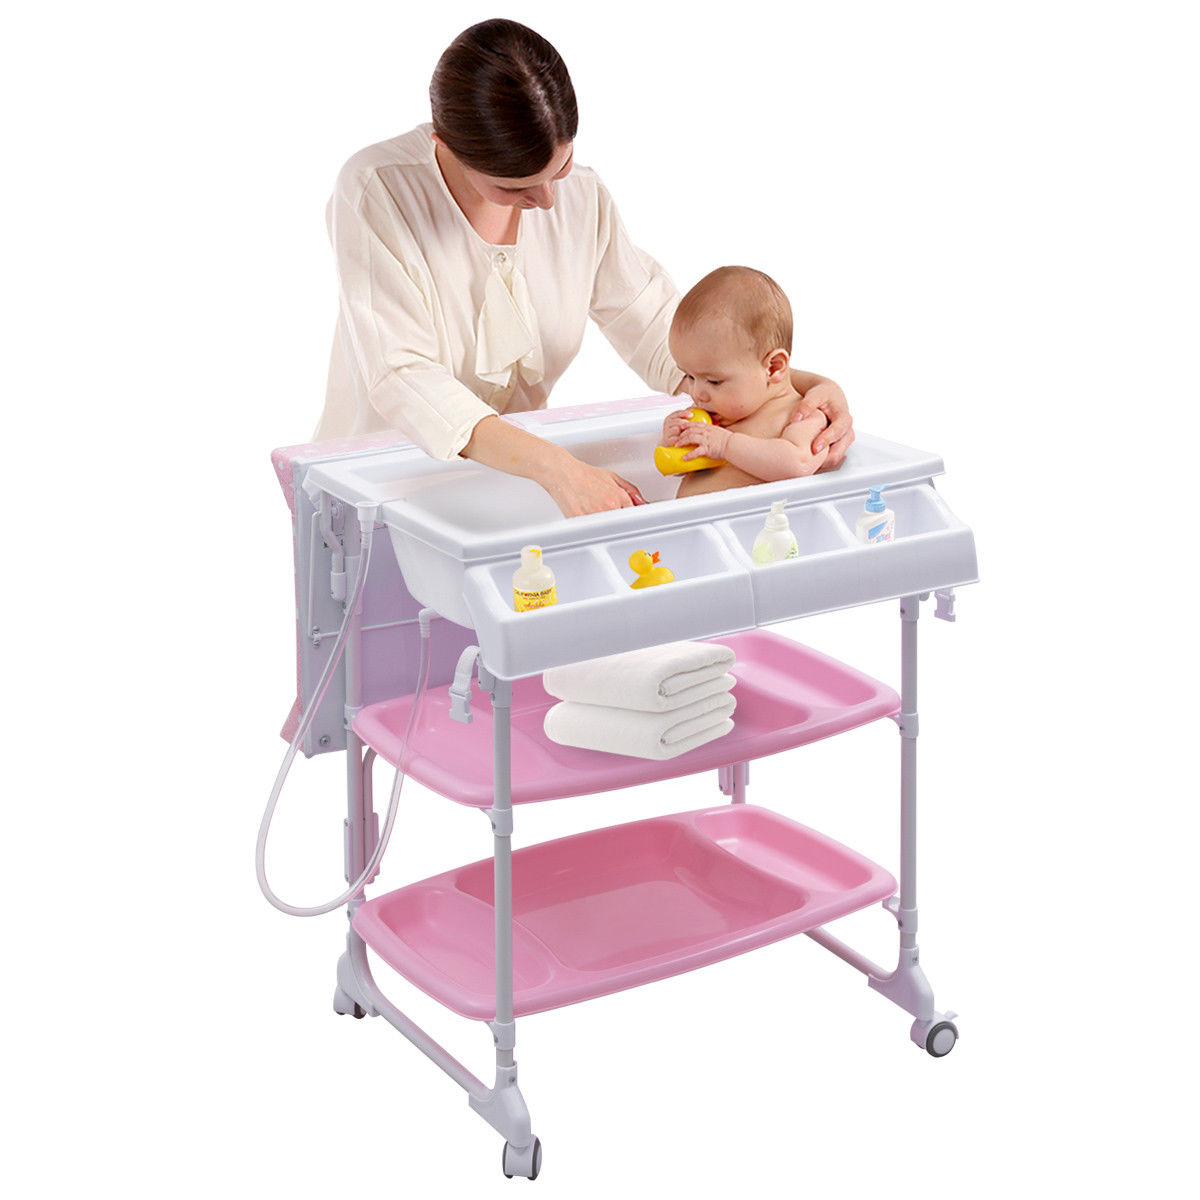 Costway Baby Infant Changing Table Diaper Station Organizer Storage w/ Tube - image 4 de 10